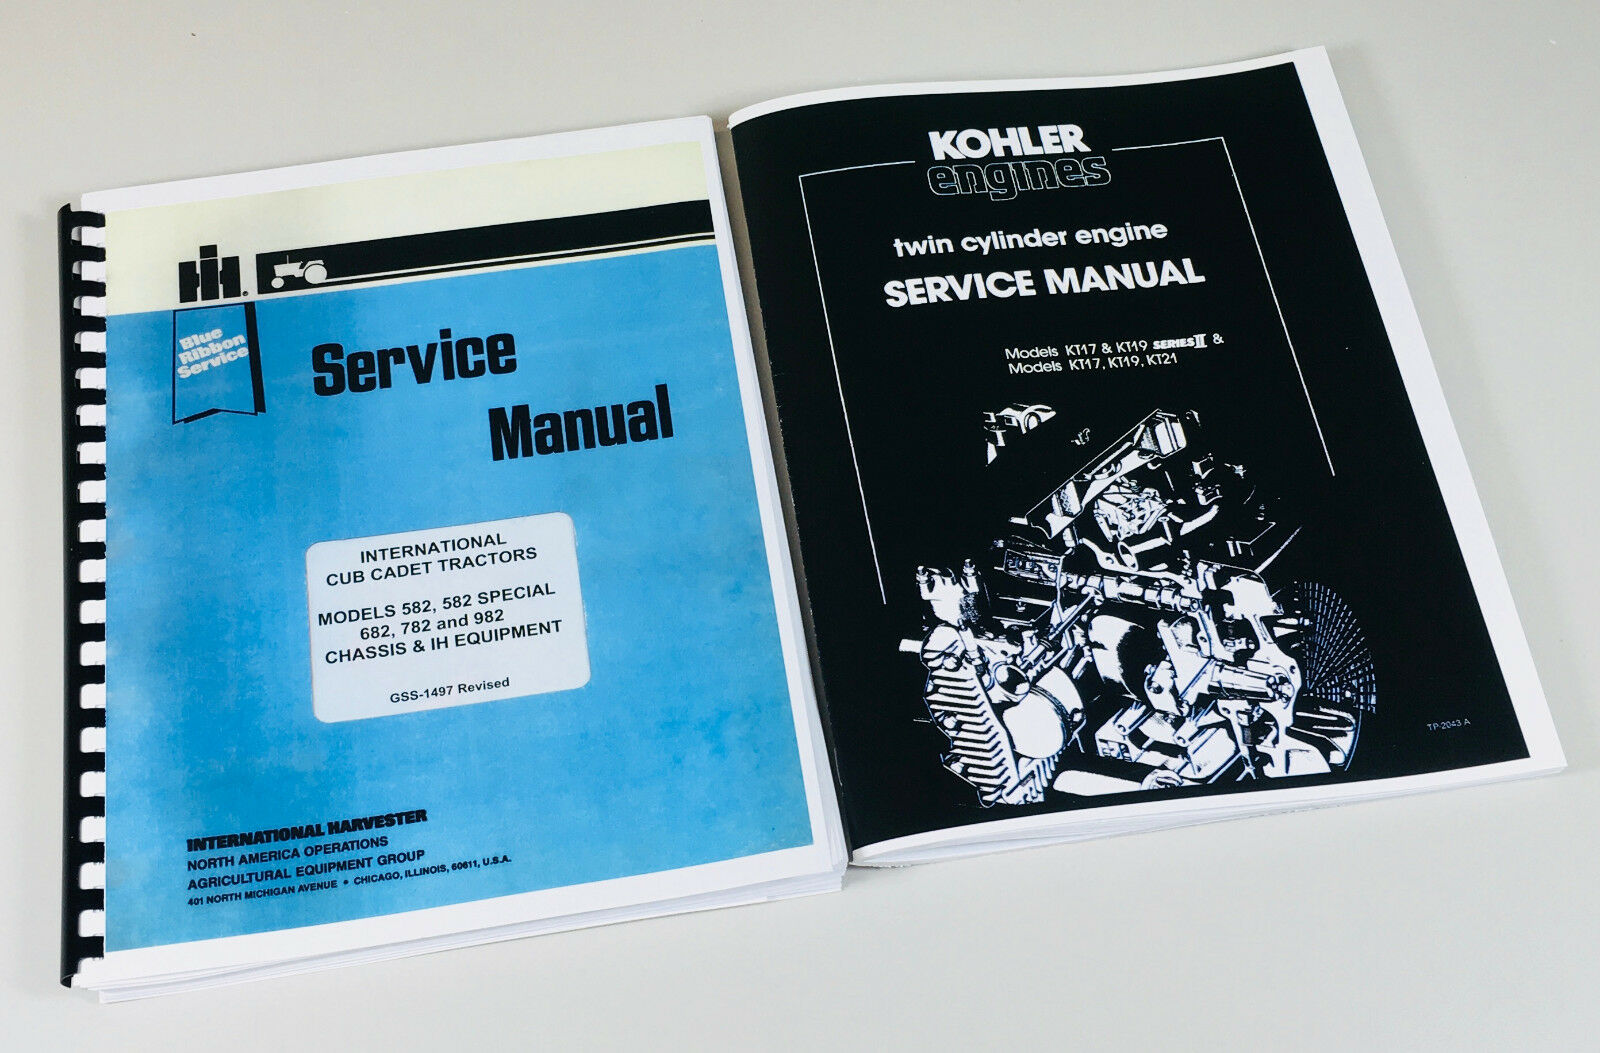 Complete Chassis Service and Engine Service Maintenance Manuals